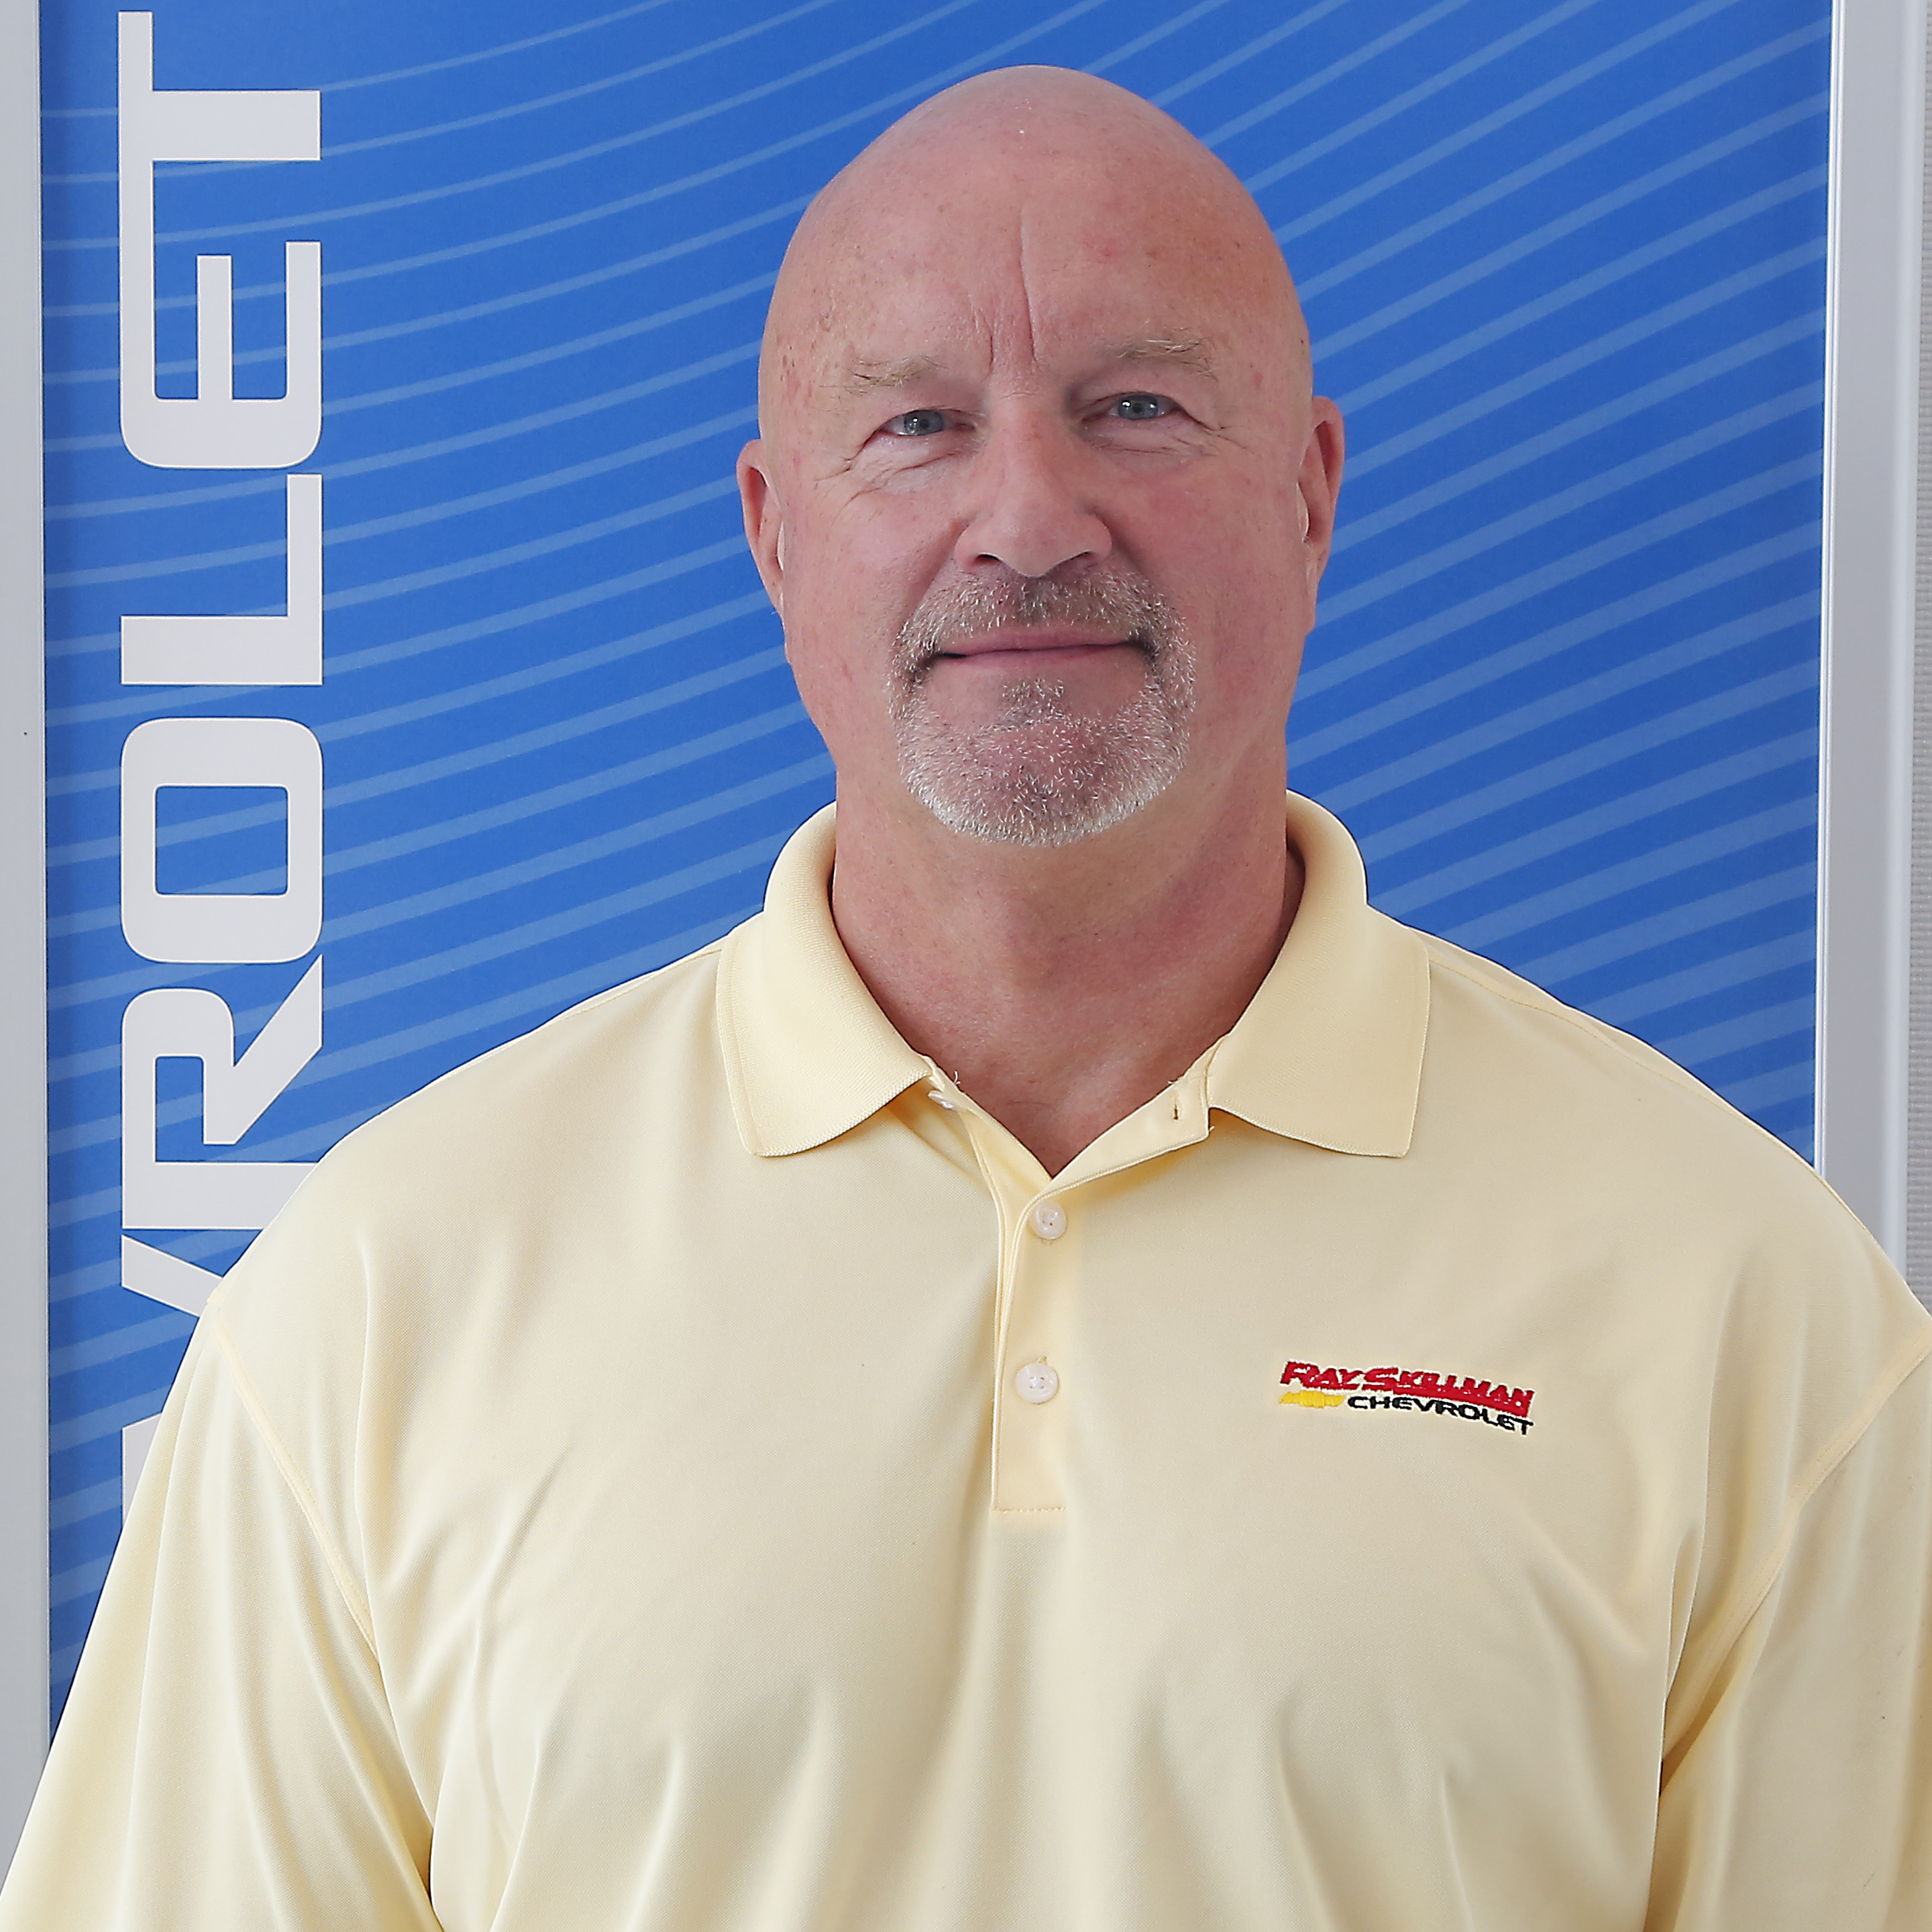 Ray Skillman Chevy >> Ray Skillman Chevrolet Staff | Indianapolis Chevrolet Dealer